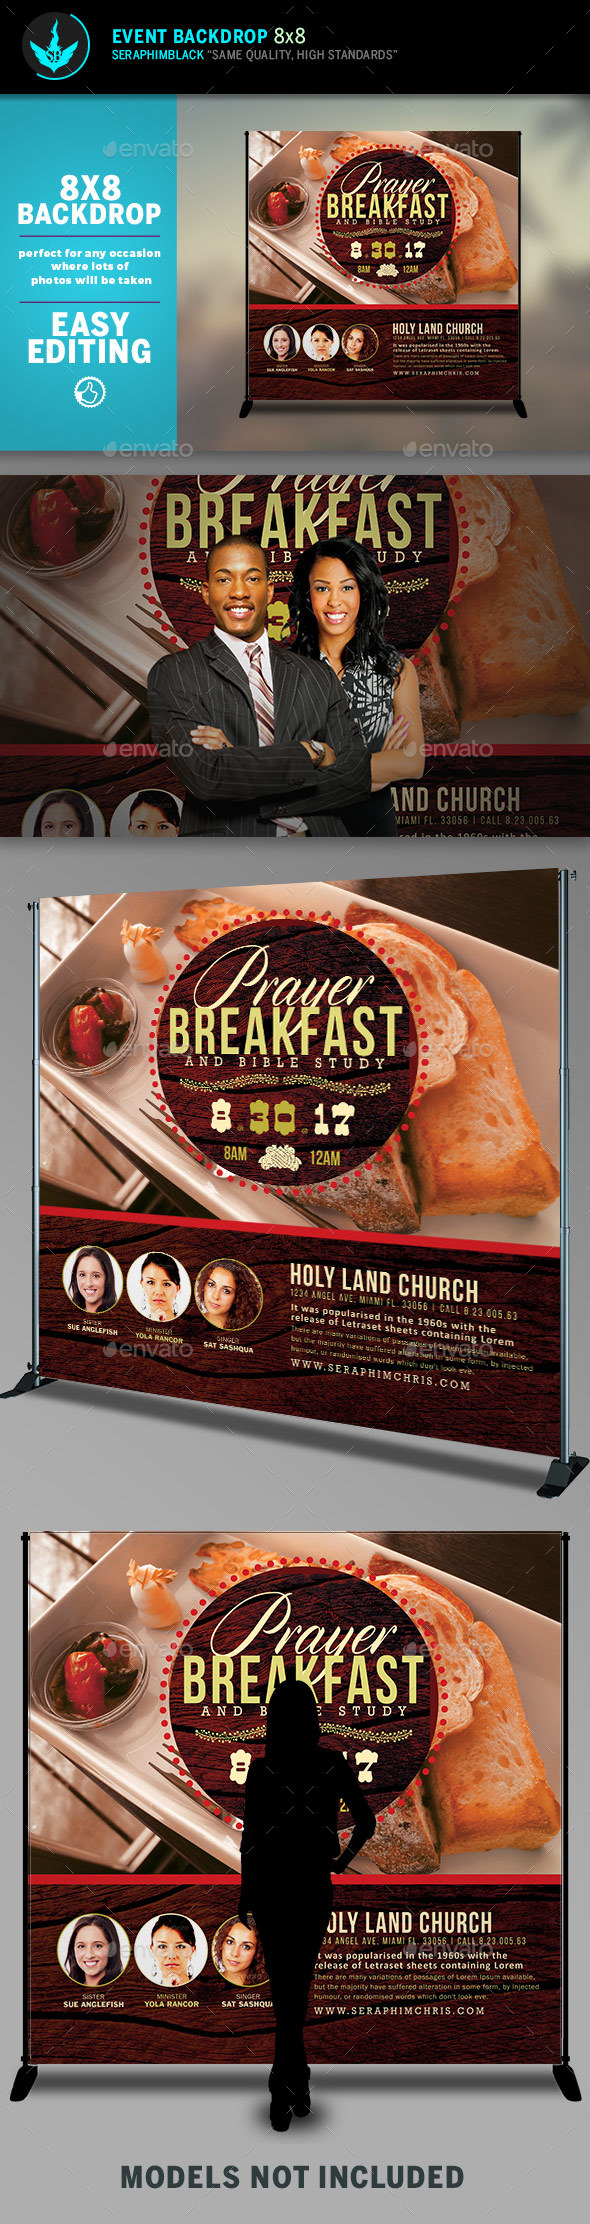 GraphicRiver Prayer Breakfast 8x8 Event Backdrop Template 20489832